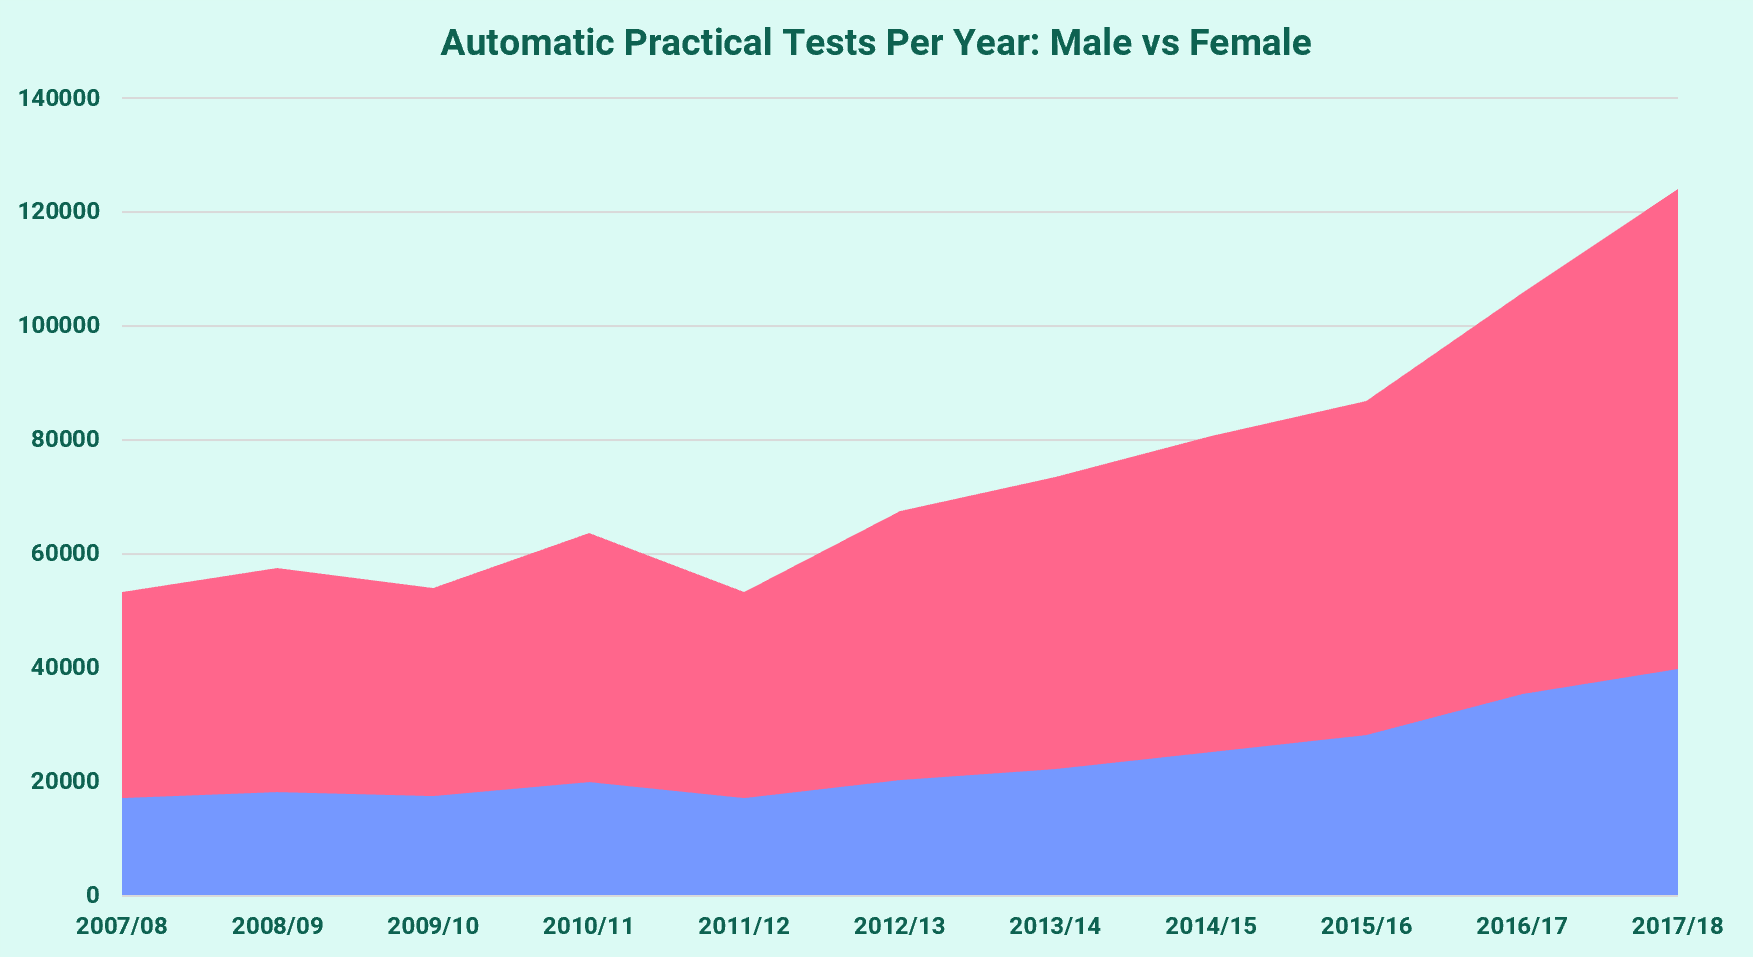 Male and Female automatic tests per year since 2007